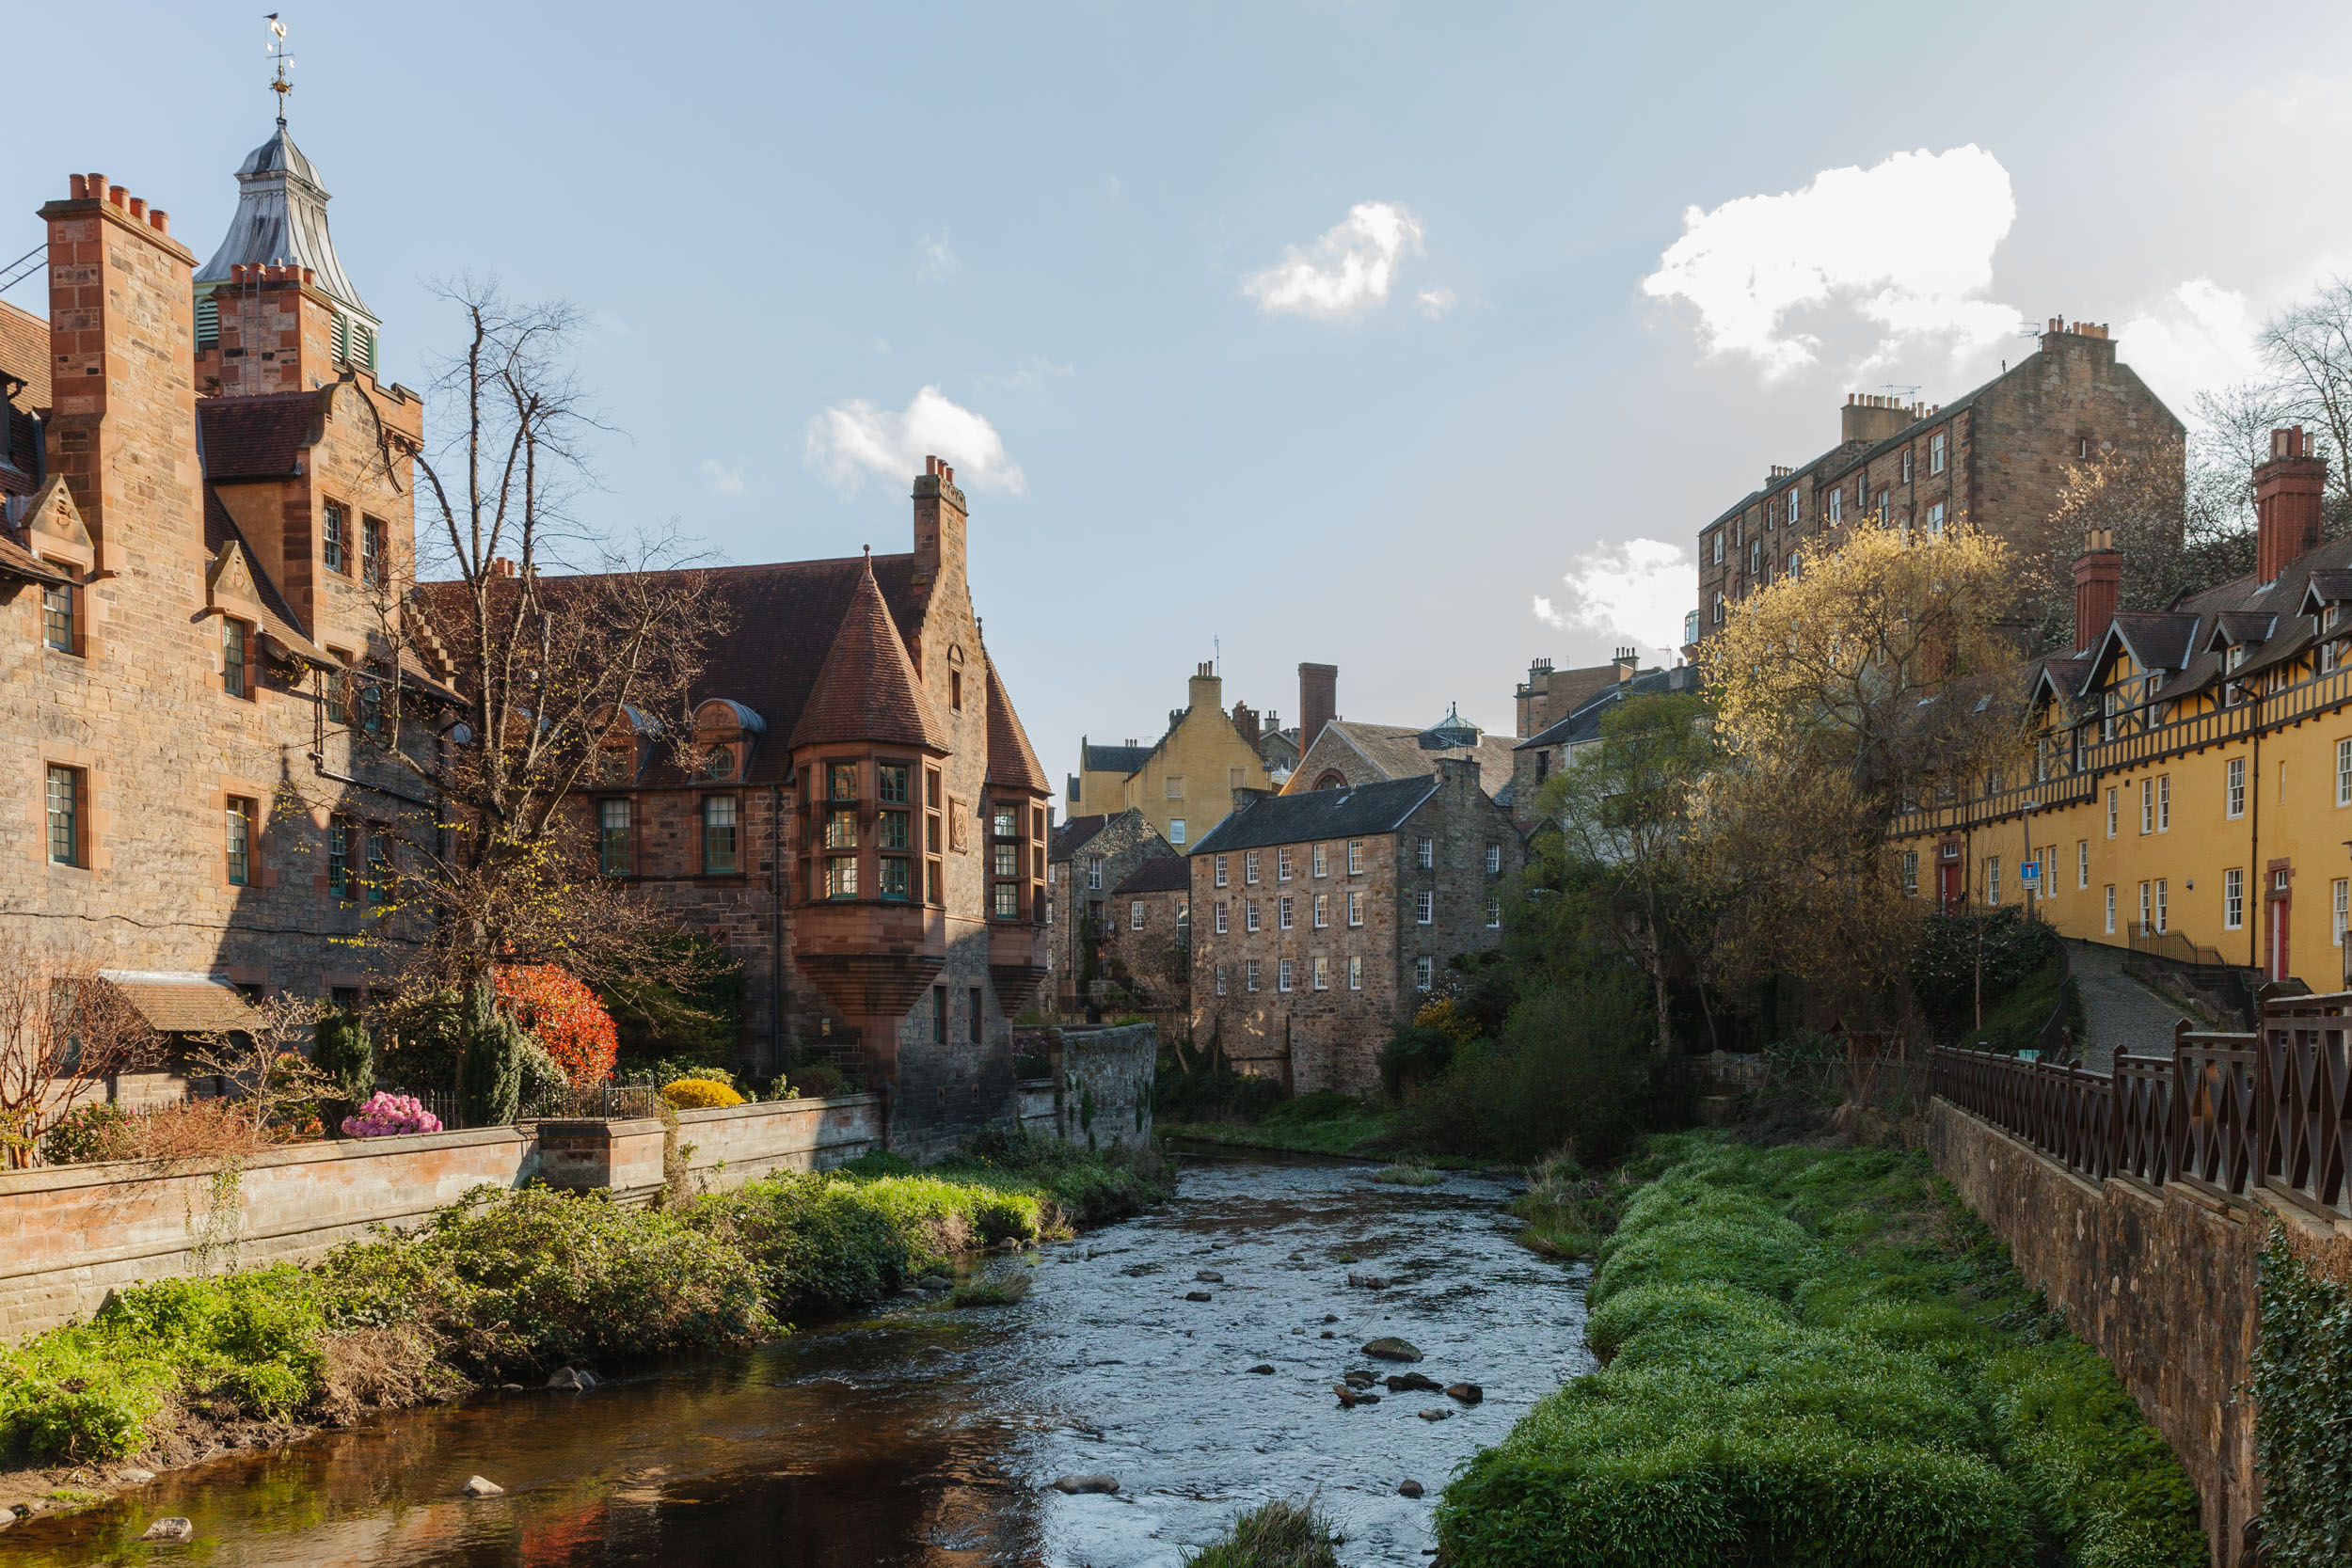 So many lovely views of Dean Village in the morning light